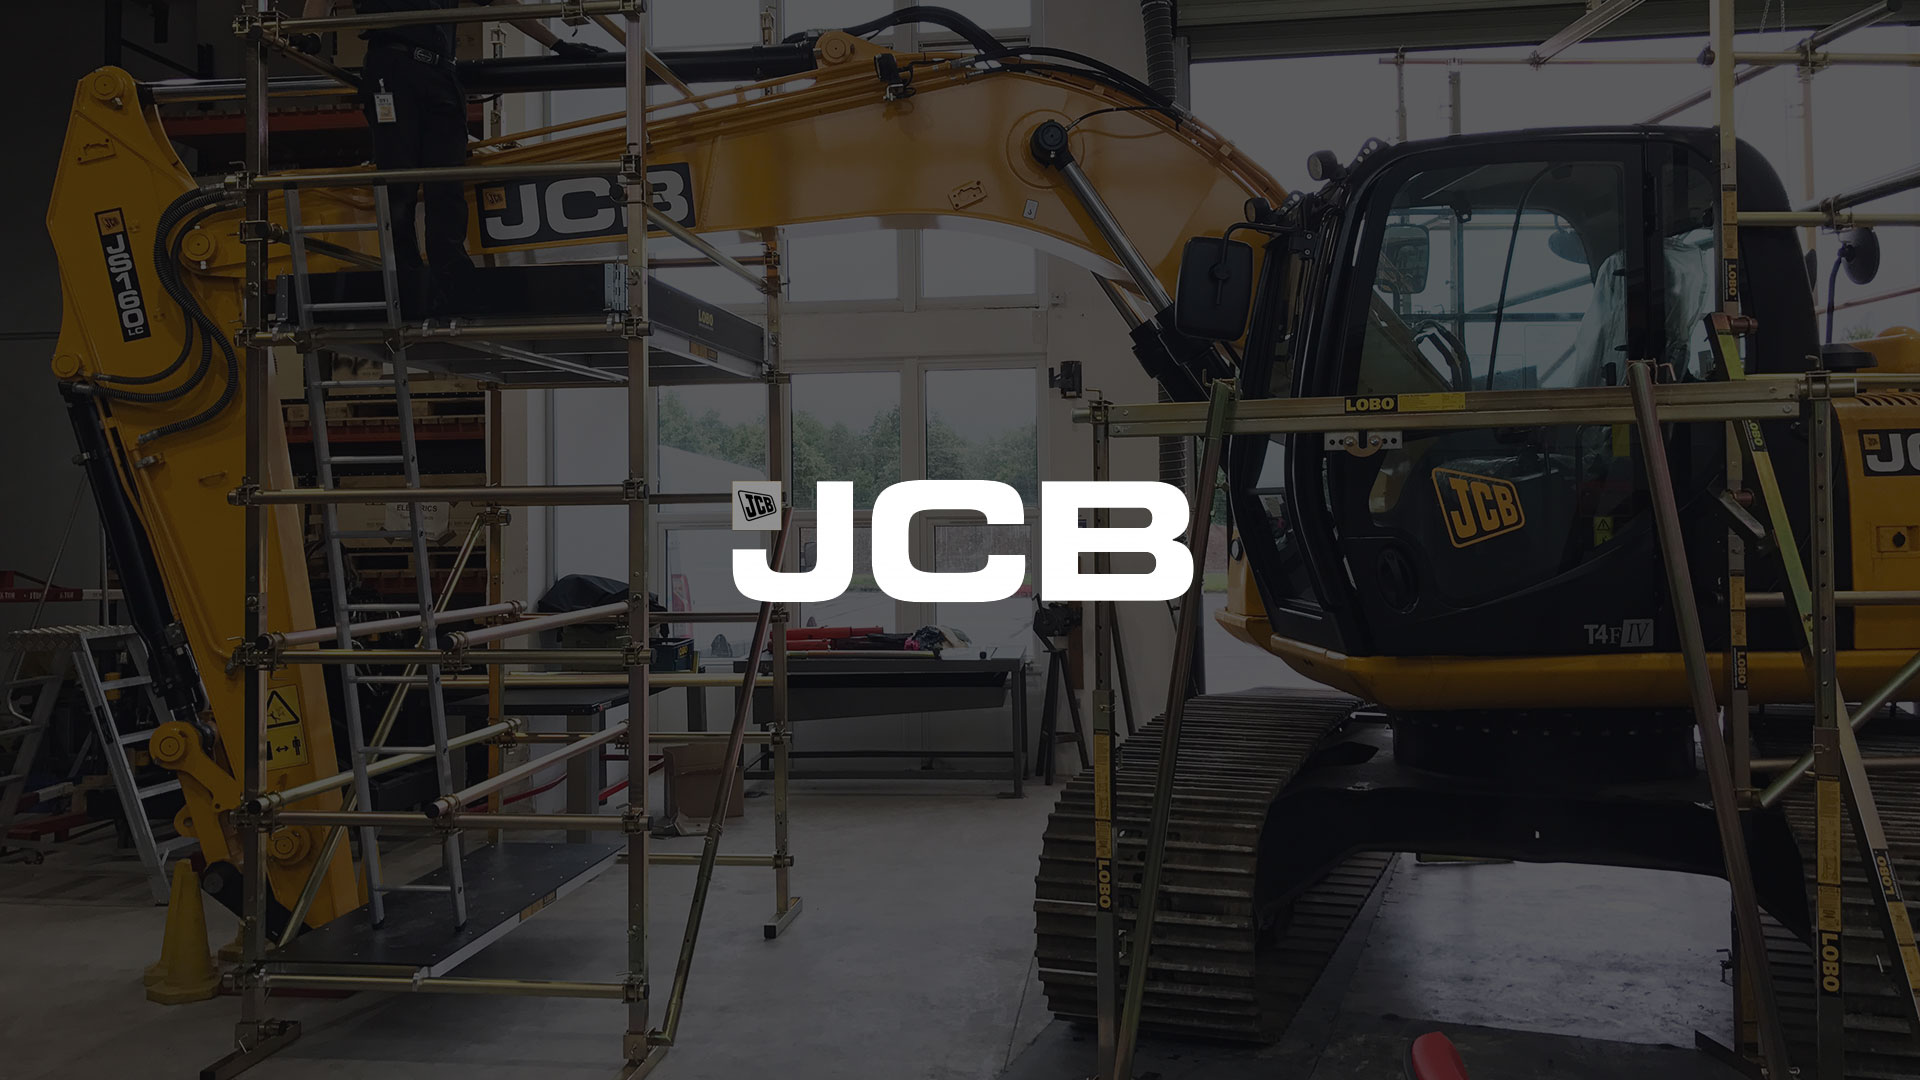 JCB: Construction Plant Maintenance